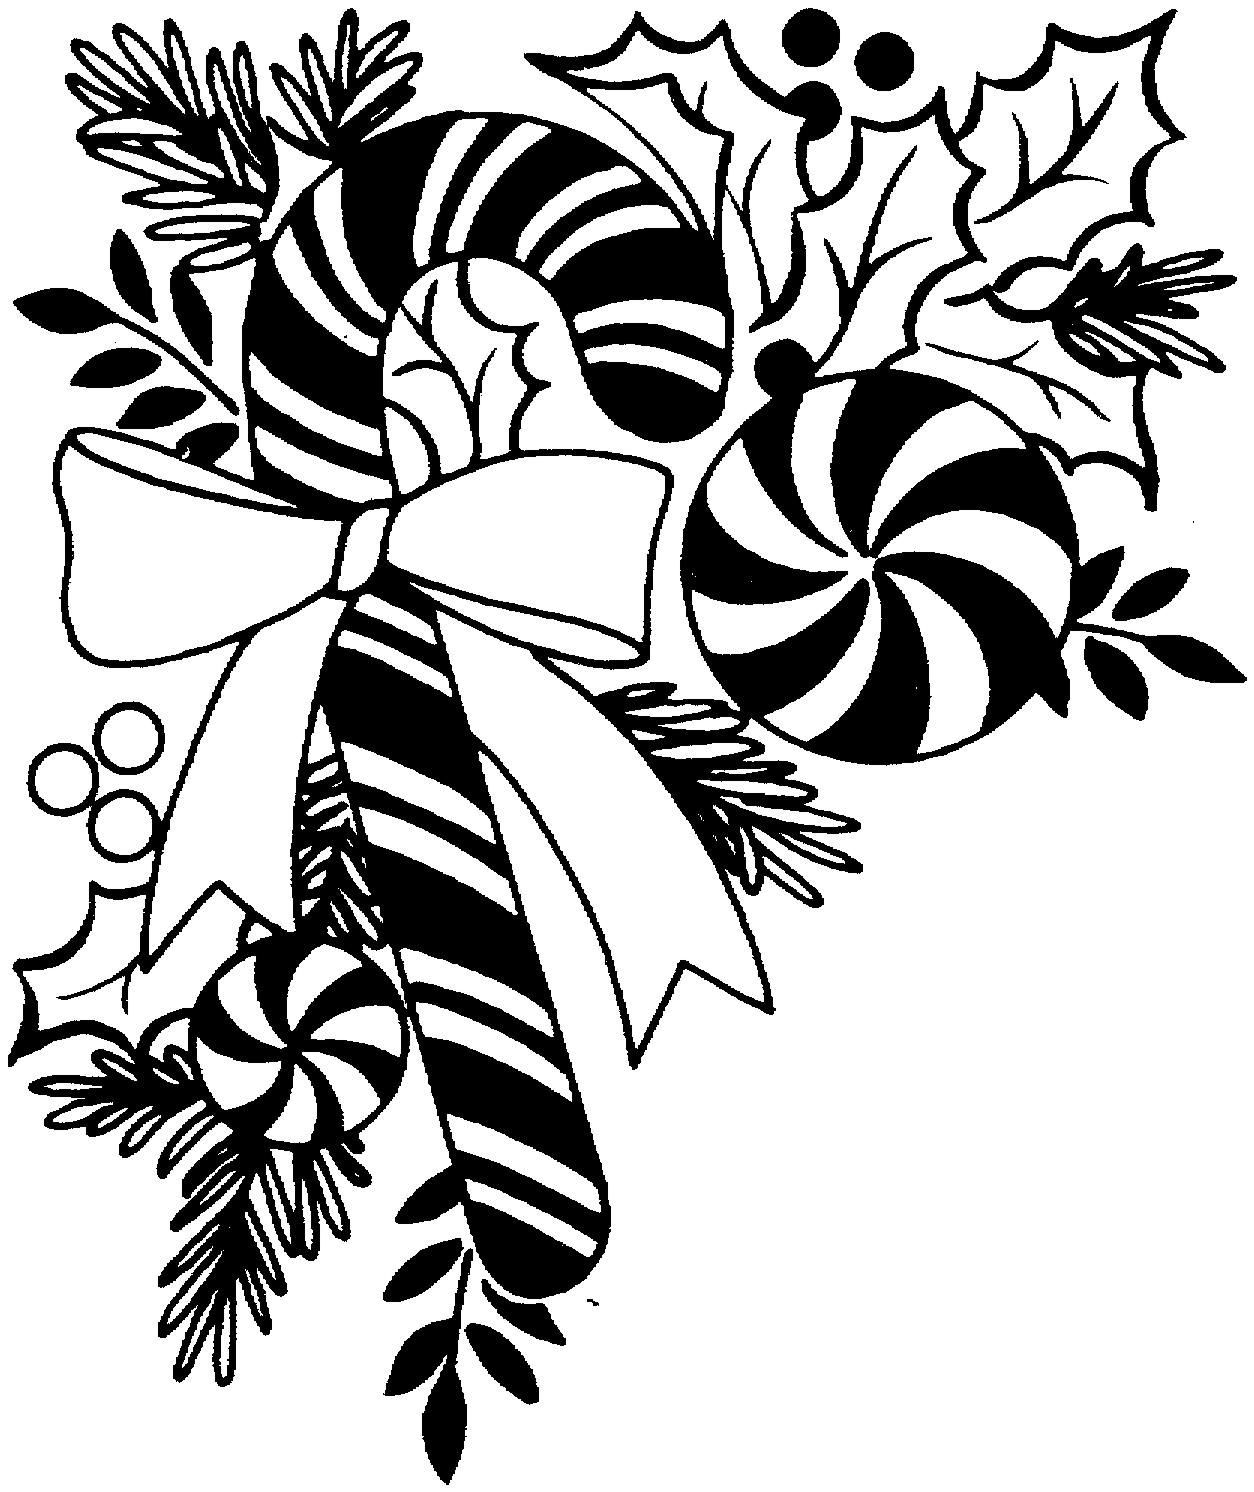 Christmas decorations clipart borders black and white 4 » Clipart Portal.